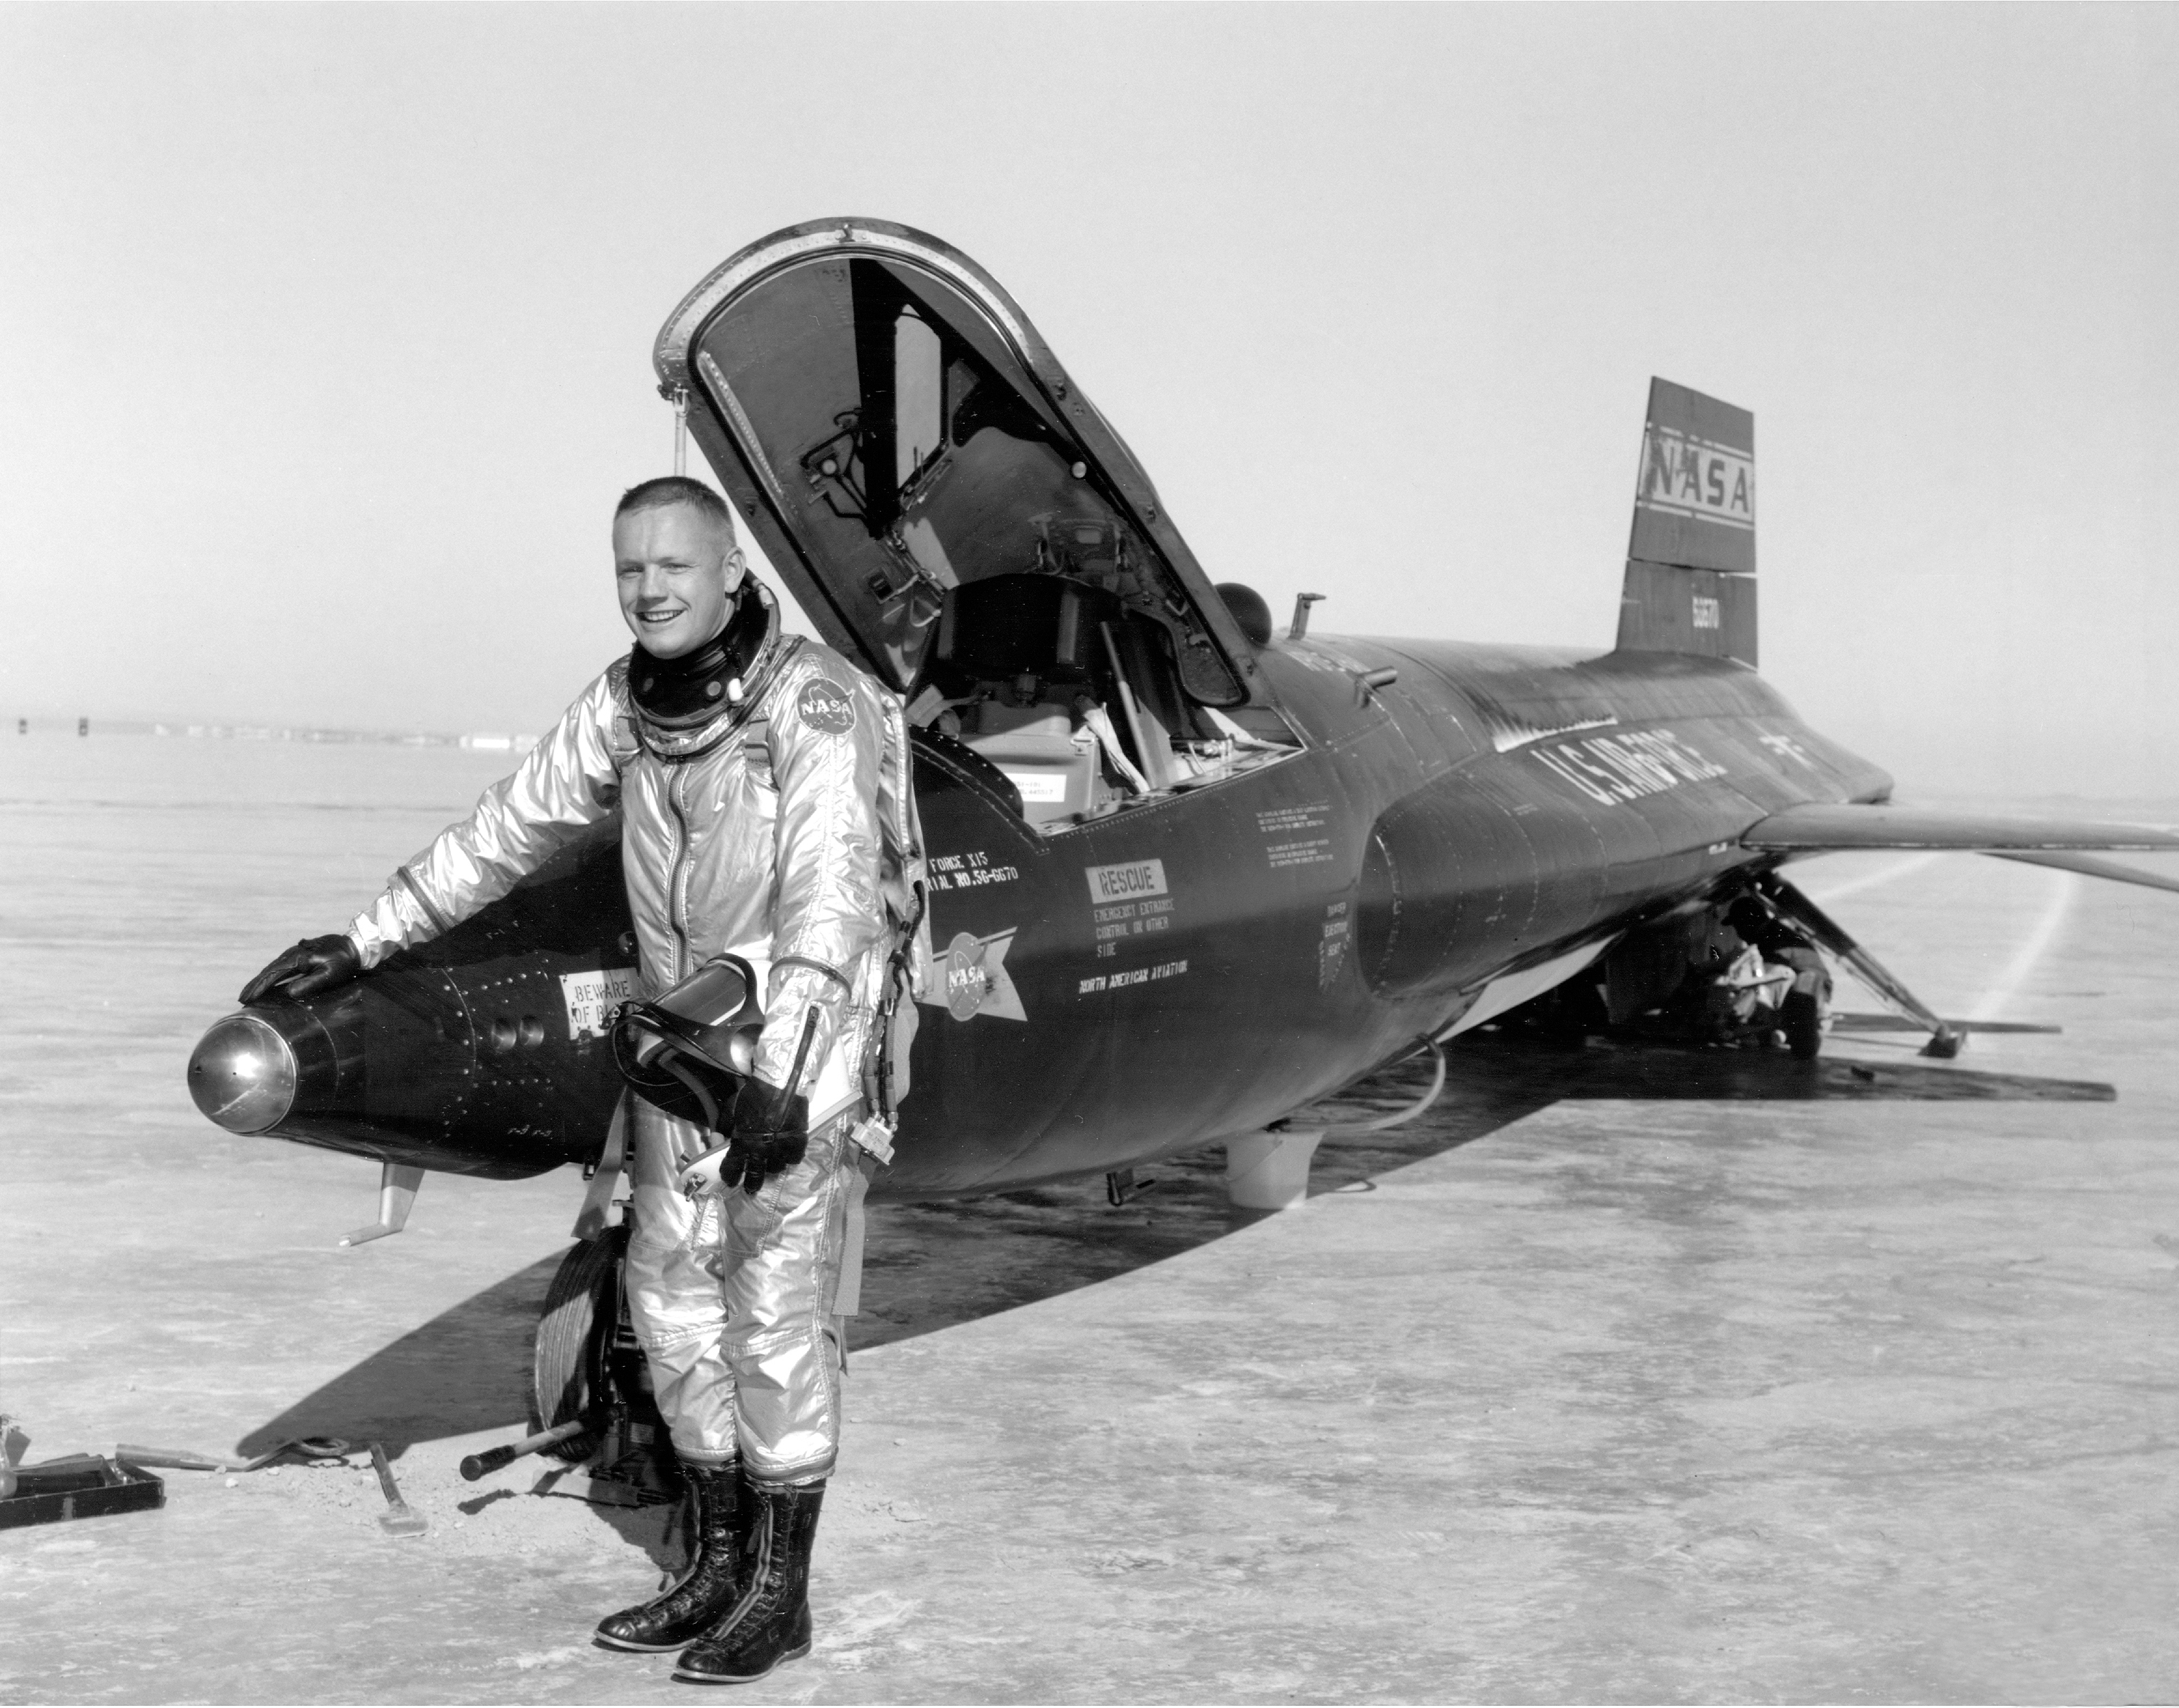 Neil Armstrong with the North American X-15